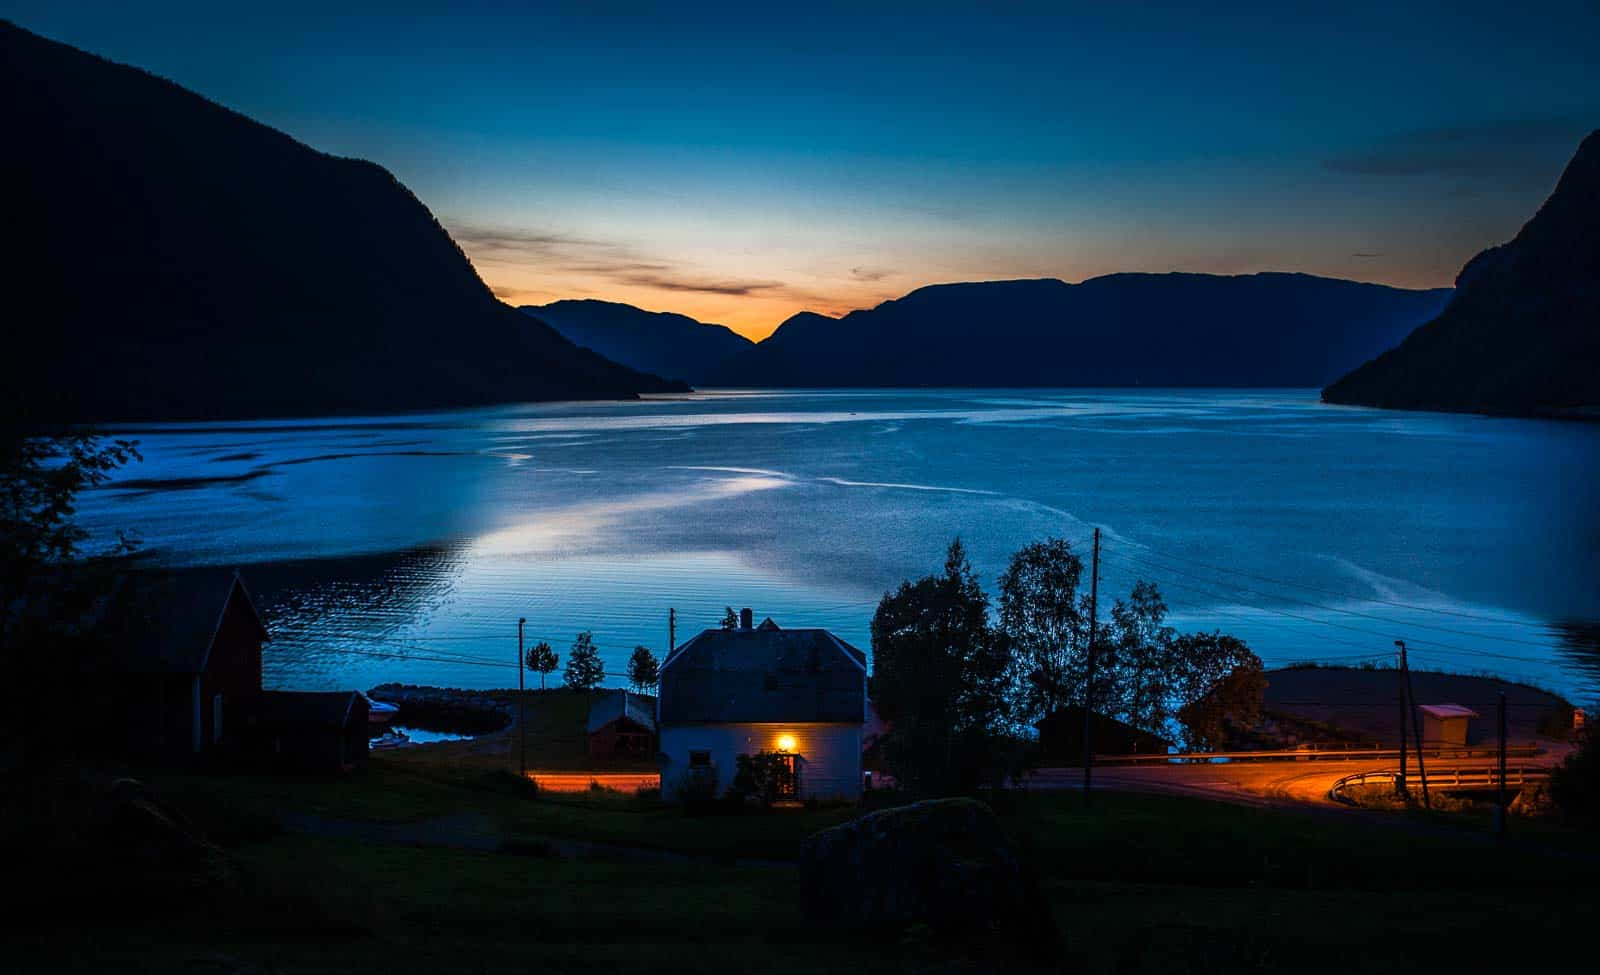 Sonnenuntergang in Norwegen